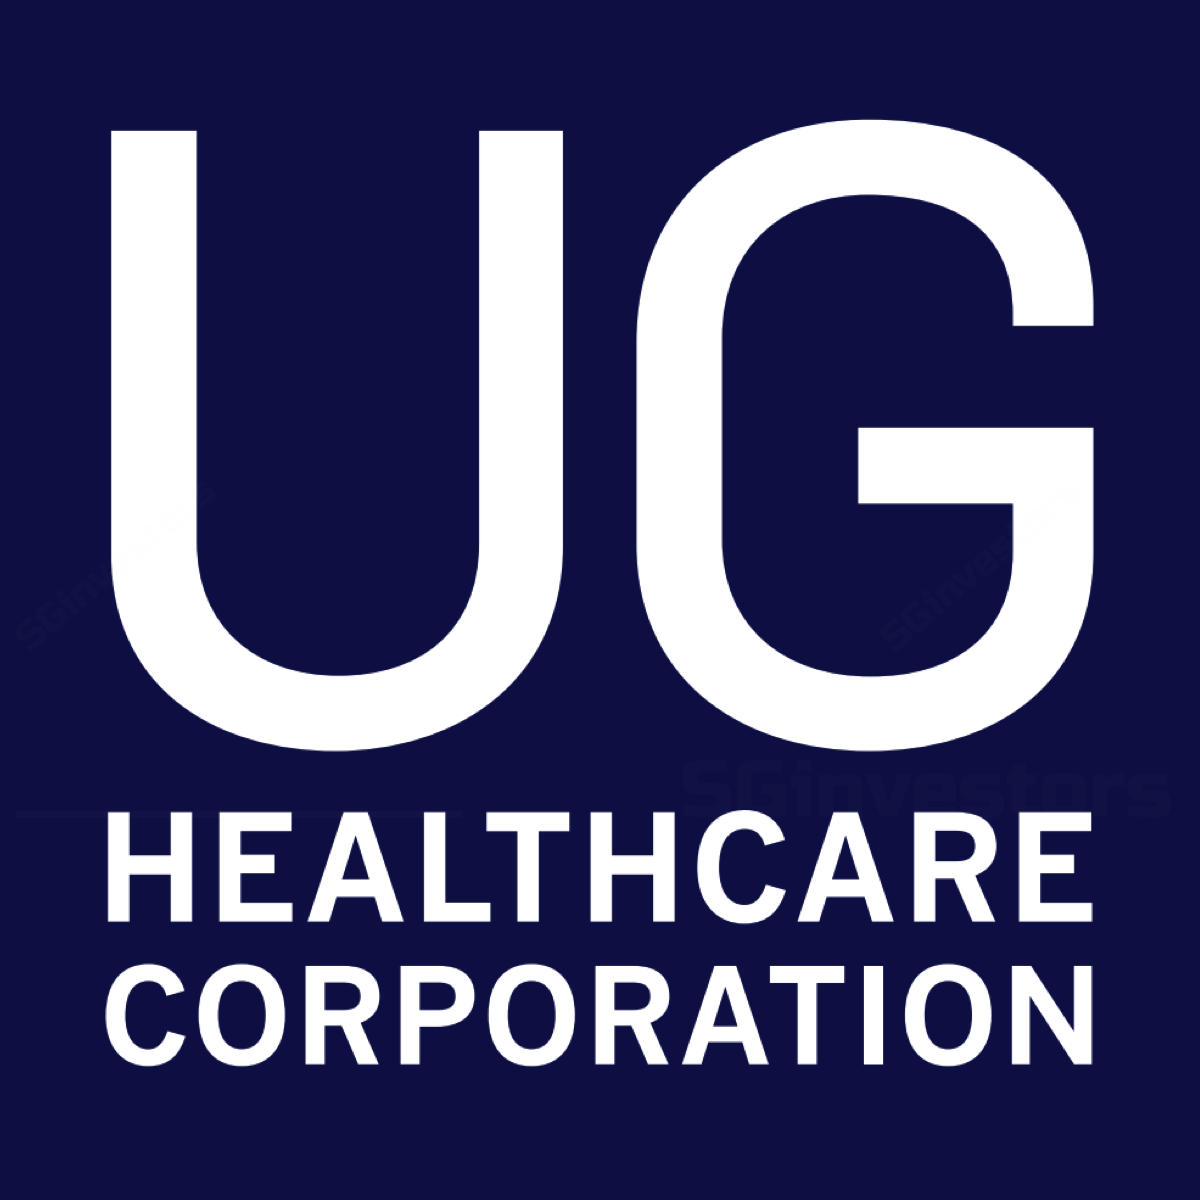 UG Healthcare - RHB Securities Research 2018-08-24: Management: Increased Capacity To Drive Efficiency